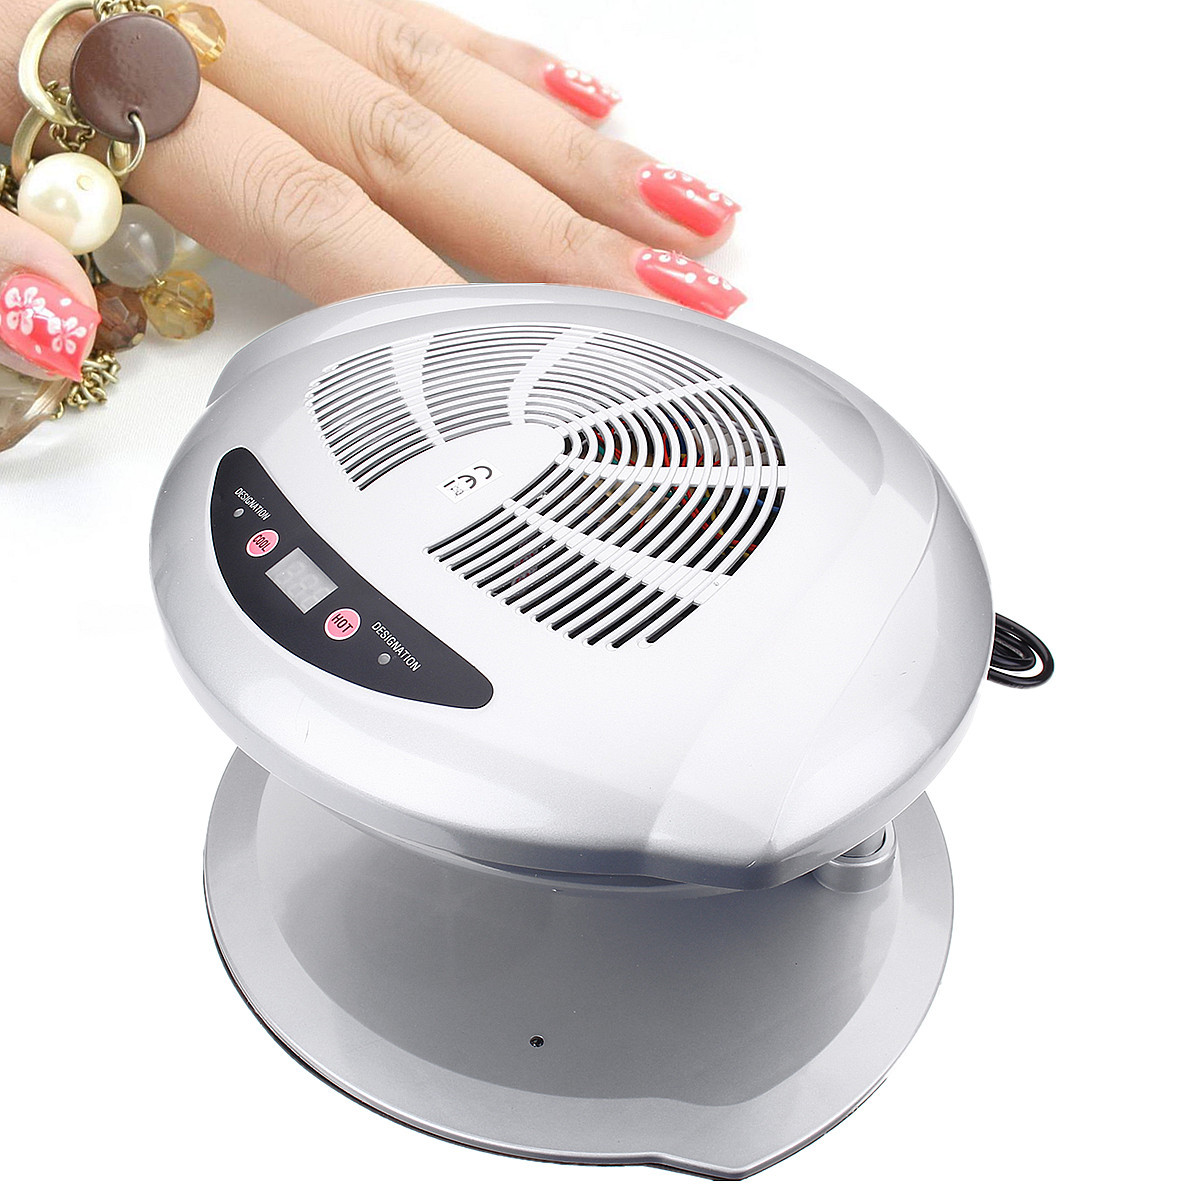 Auto Induction Sensors Nail Dryer Fan 220V Warm & Cool Wind UV Gel Polish Varnish Drying Manicure Blower For Both Hands and Toes